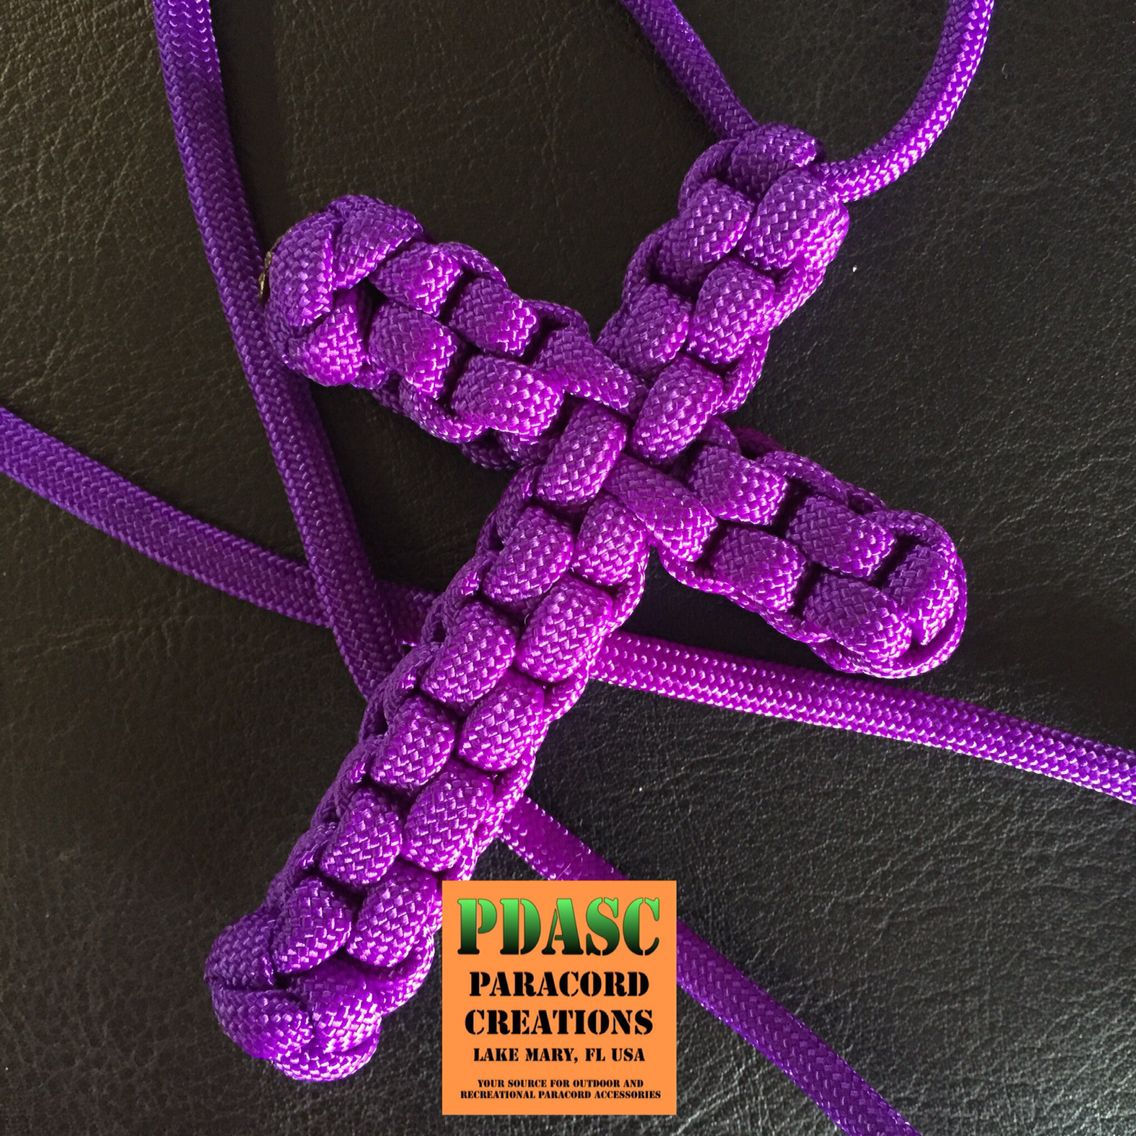 Purple Cross from today's market event. Lady picked this up for a family member along with a Blue Awareness Ribbon. ••• Color: Acid Purple #PDASC #Paracord #cross